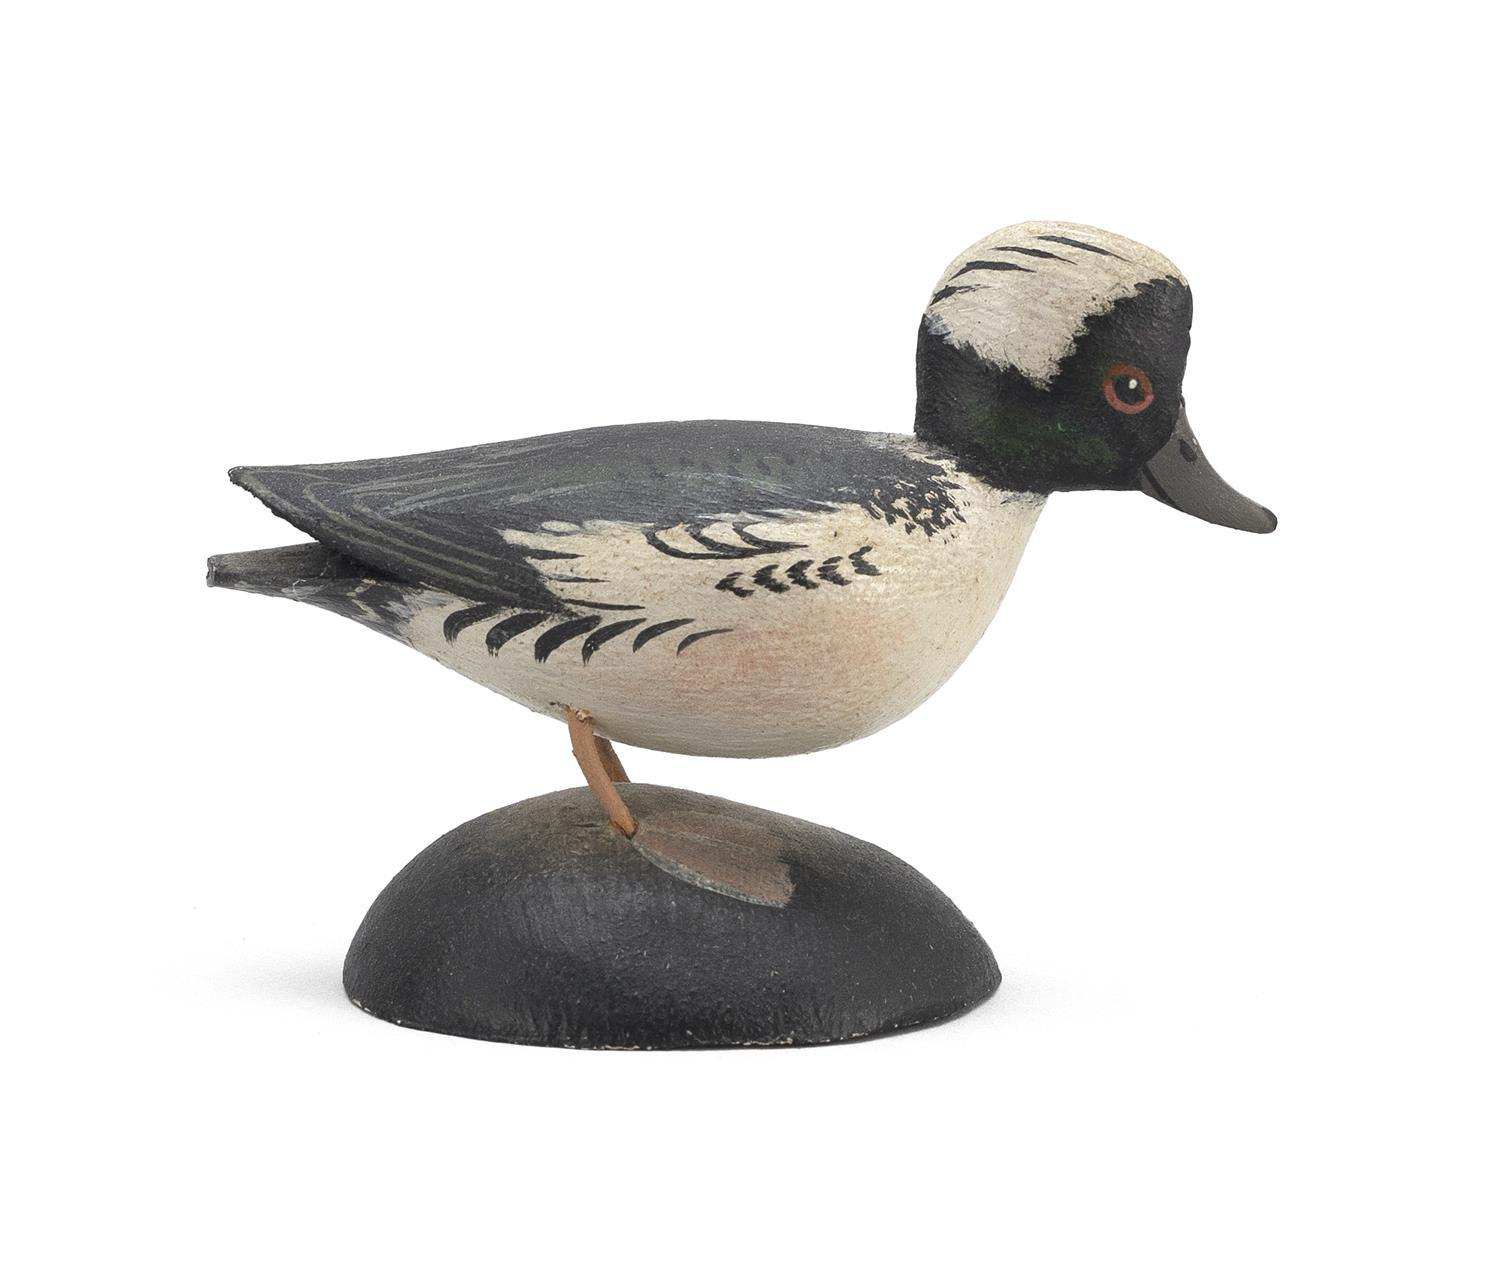 "A. ELMER CROWELL MINIATURE BUFFLEHEAD DRAKE Rubber stamp mark. Length 2.75"". From the Mr. & Mrs. Ken DeLong Collection of Bird Carvi..."